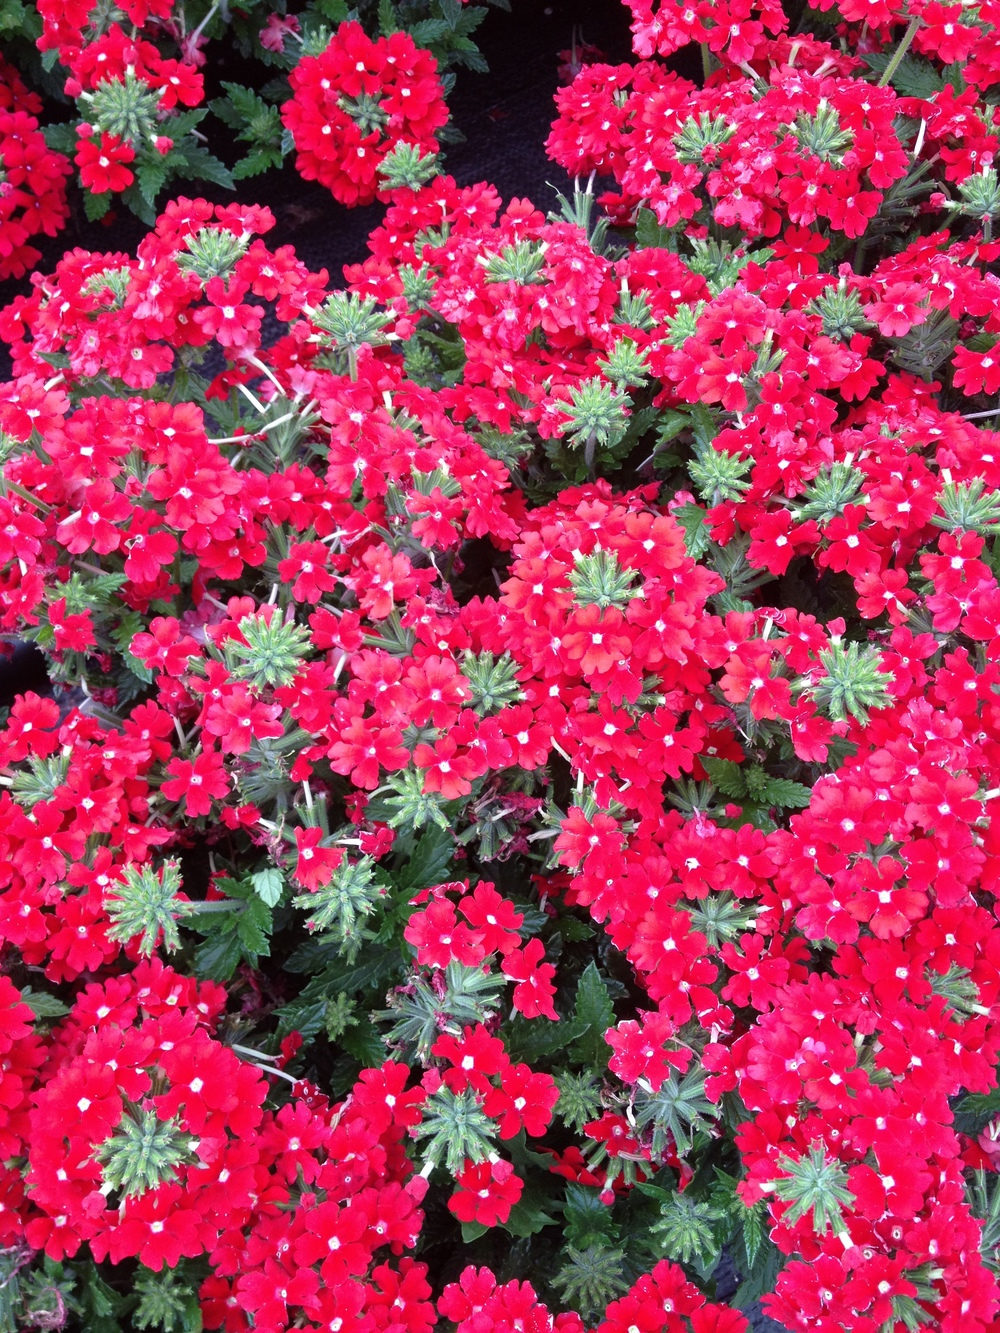 "Verbena is an excellent 4.5"" item because it's specialty is filling in planters and baskets with excellent color, vigor, and sustained beauty throughout the spring and summer. Few varieties possess as many vibrant color options and Verbena will surely be an excellent seller throughout the spring and summer months."